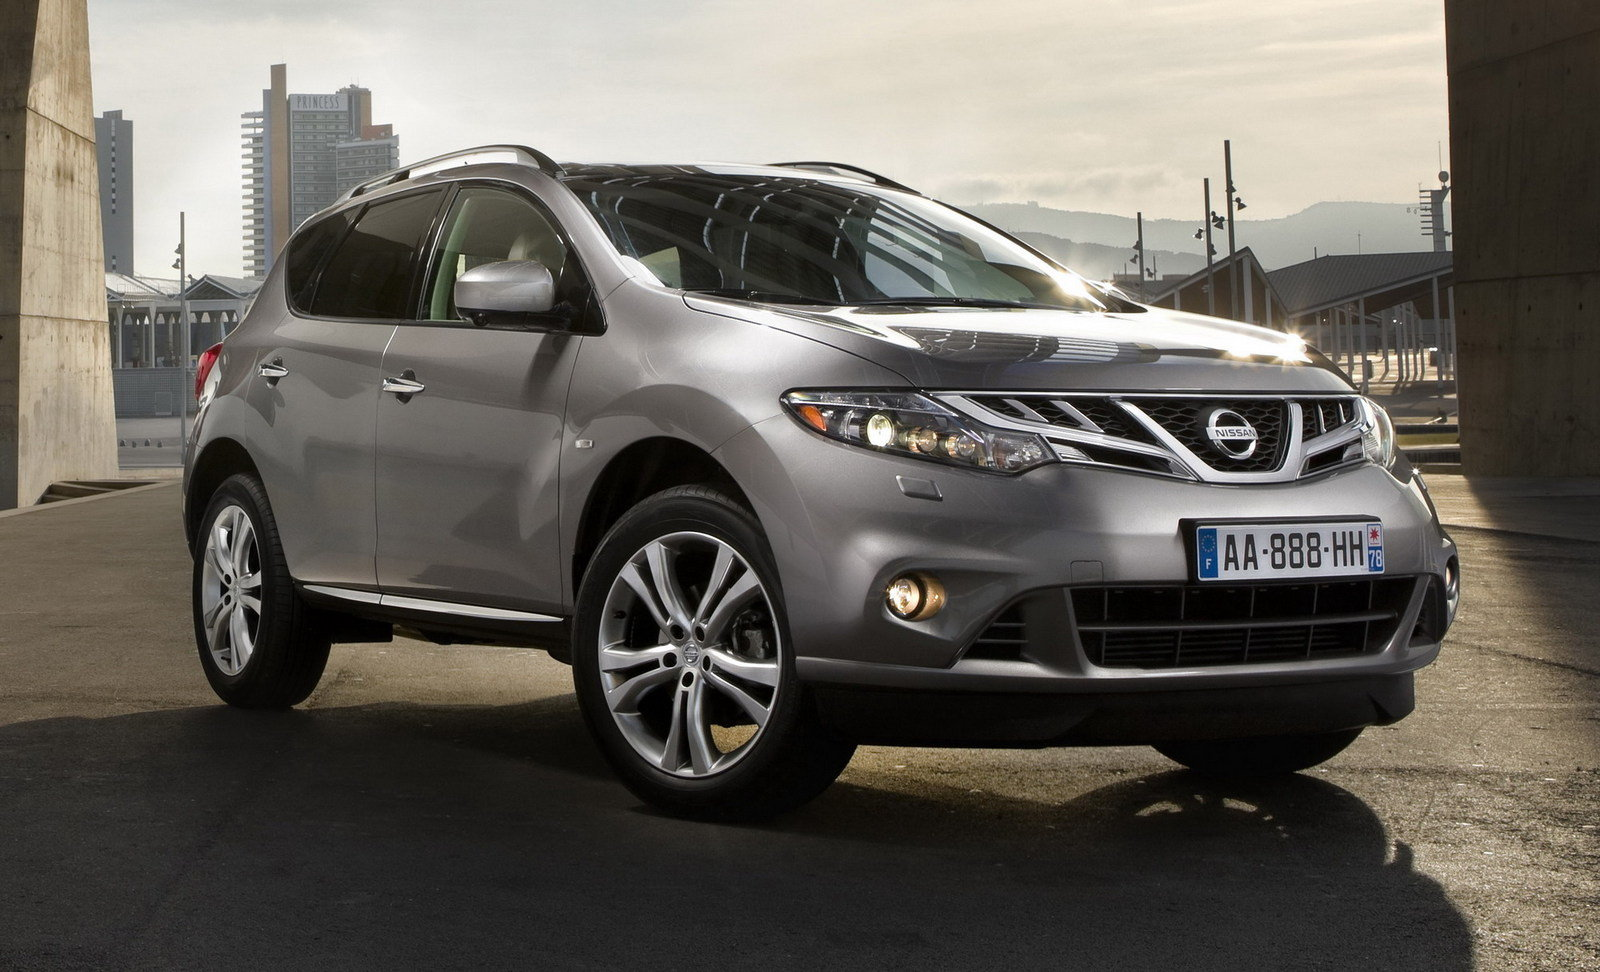 2011 Nissan Murano Diesel Review - Top Speed